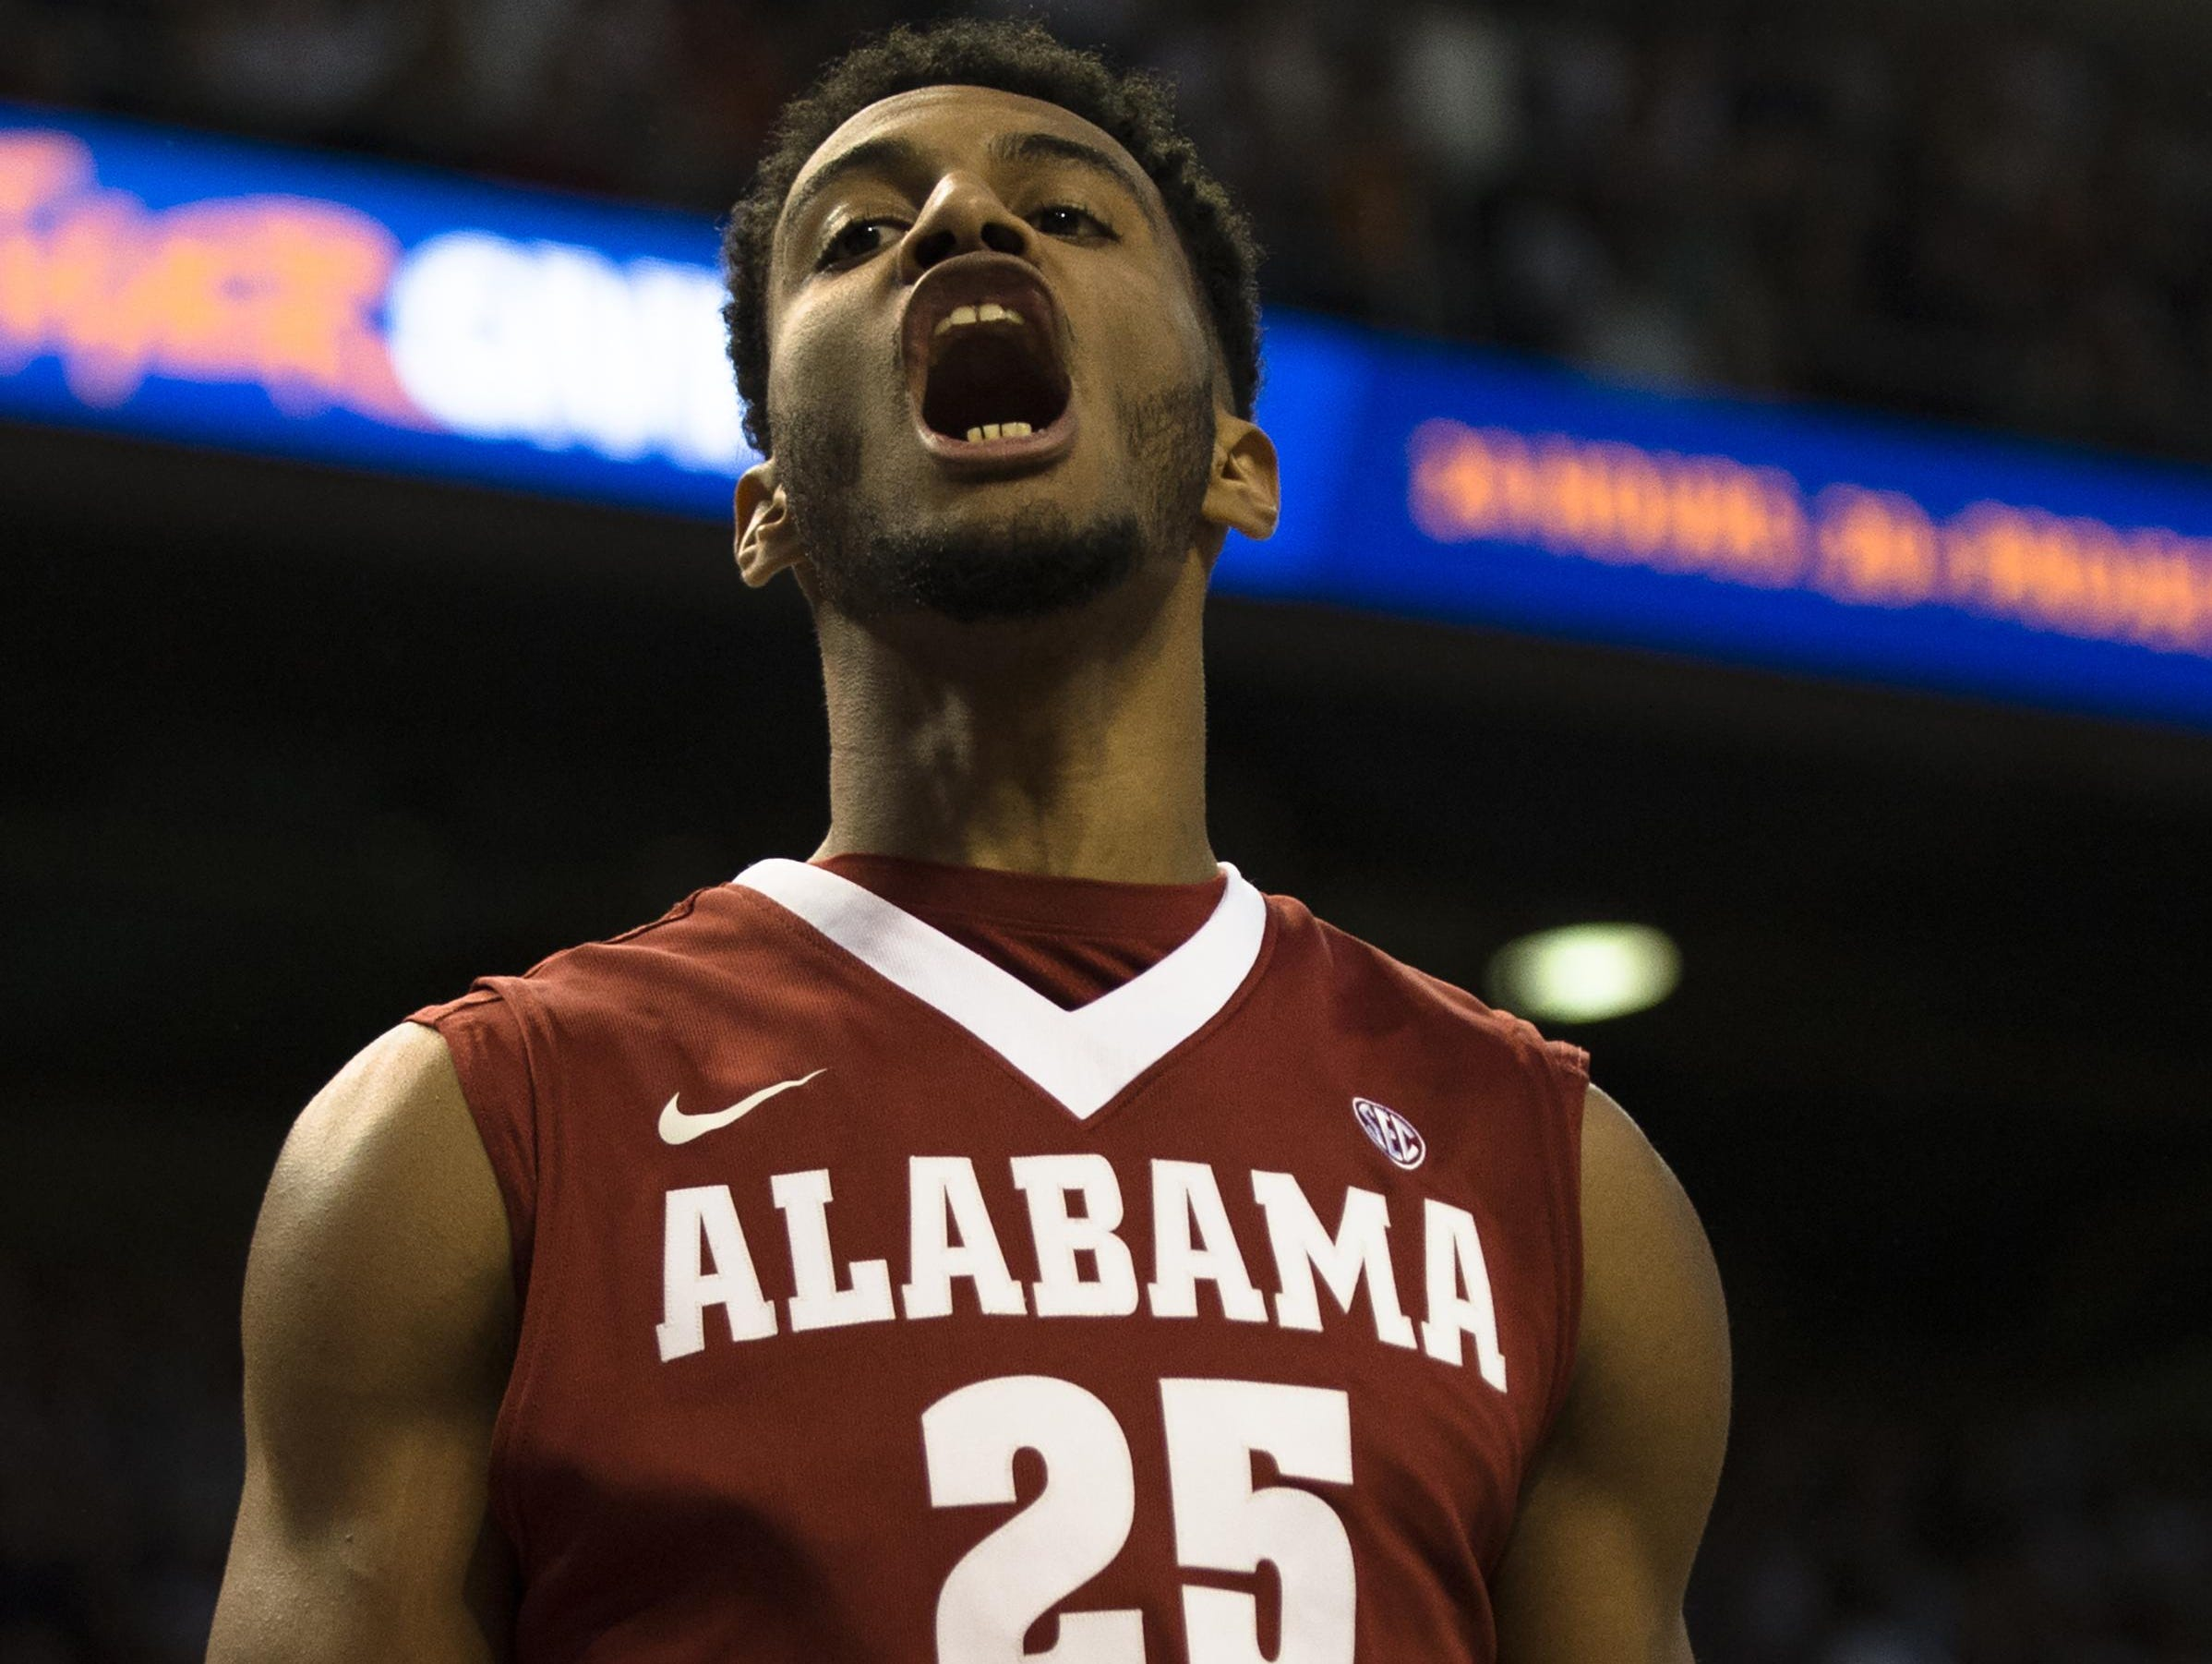 Alabama's Braxton Key (25) screams after scoring during the NCAA Basketball game between Auburn and Alabama on Saturday, Jan. 21, 2017, at Auburn Arena in Auburn, Ala.